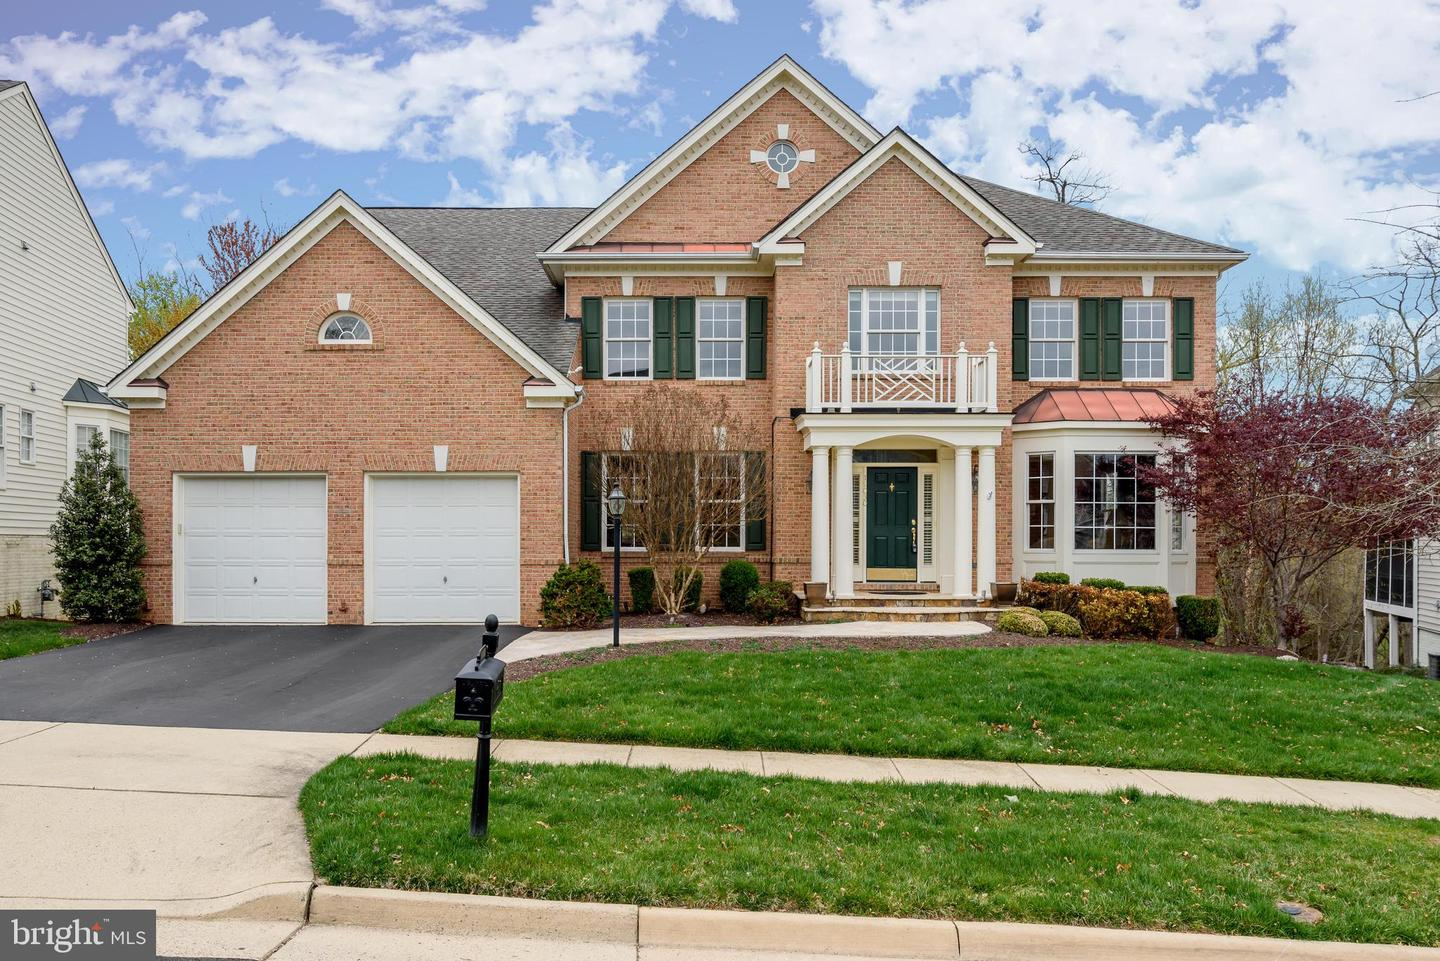 Additional photo for property listing at 19030 Coton Farm Ct 19030 Coton Farm Ct Leesburg, Virginia 20176 United States